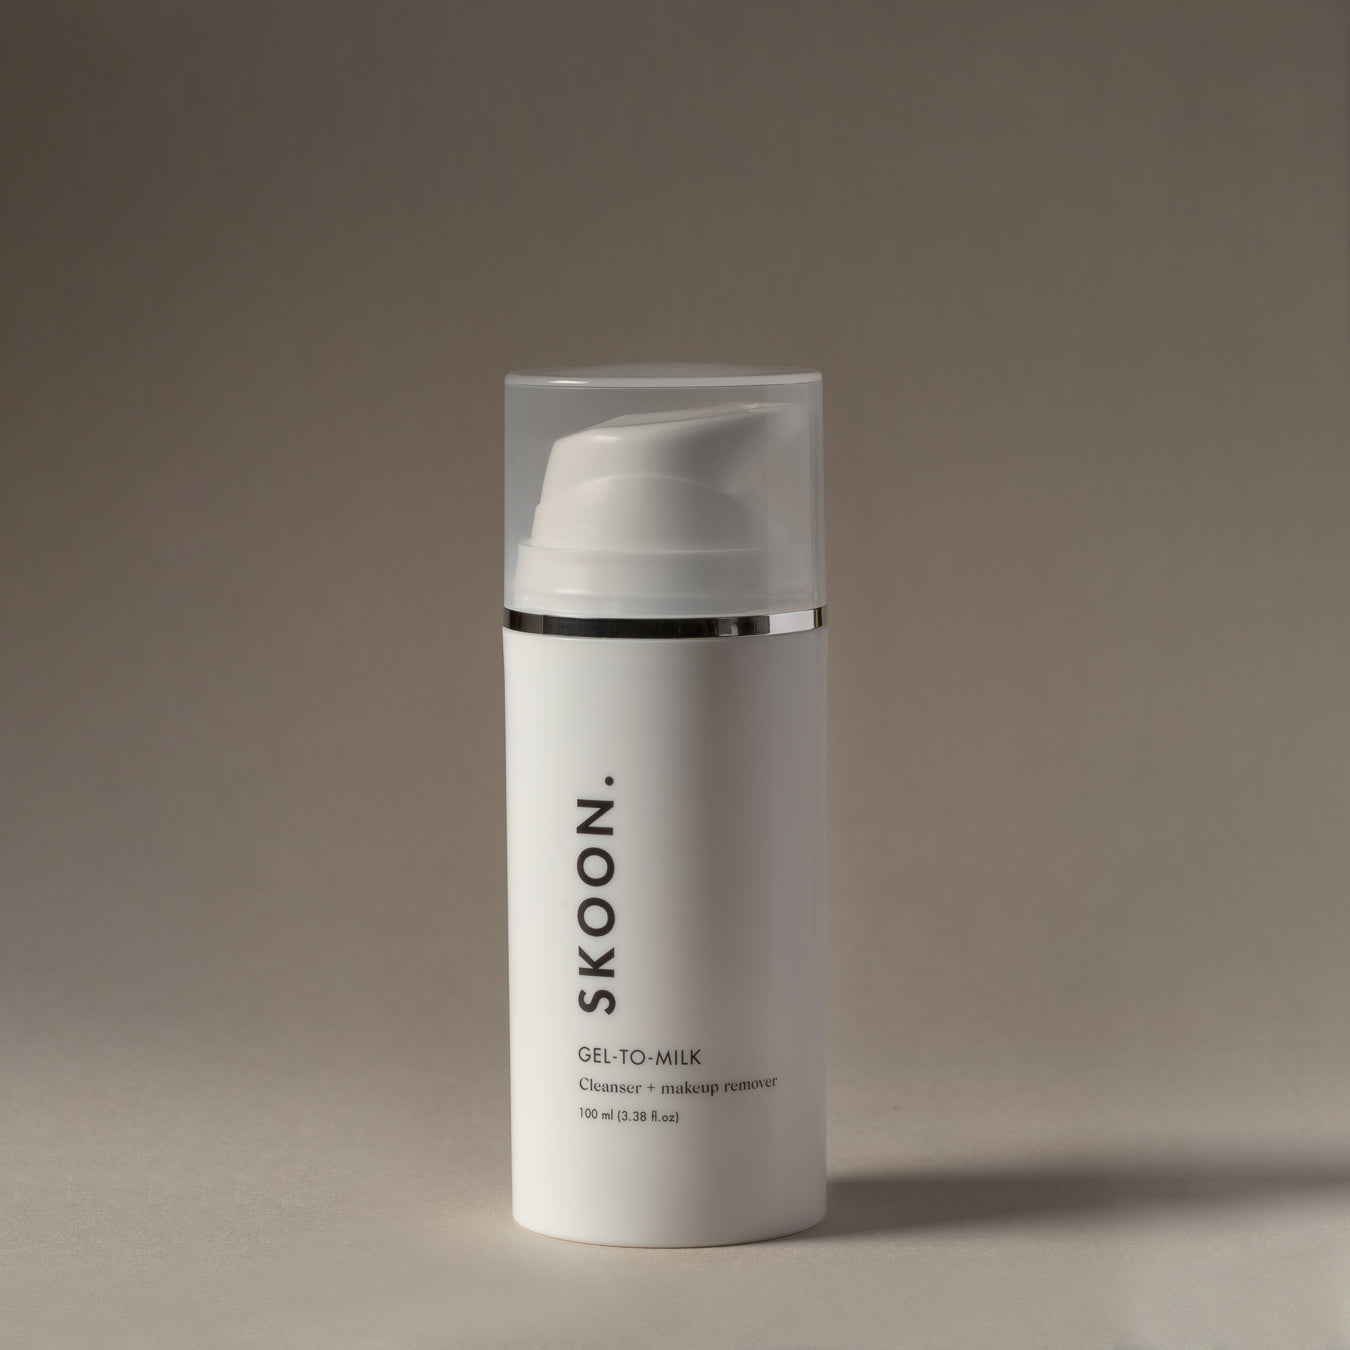 SKOON. GEL-TO-MILK Cleanser